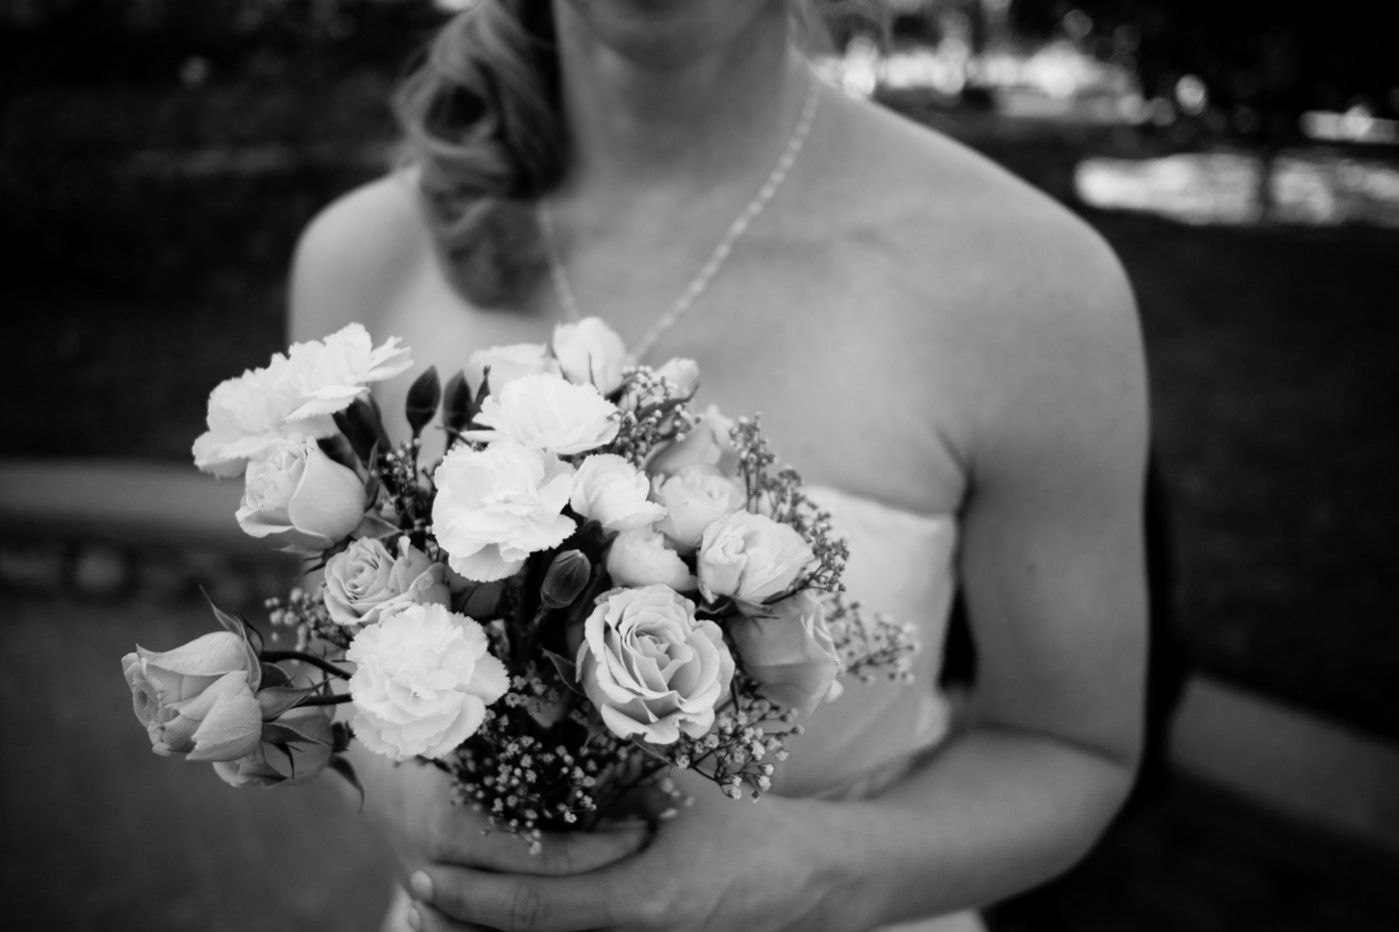 x-e1 bridesmaid flowers